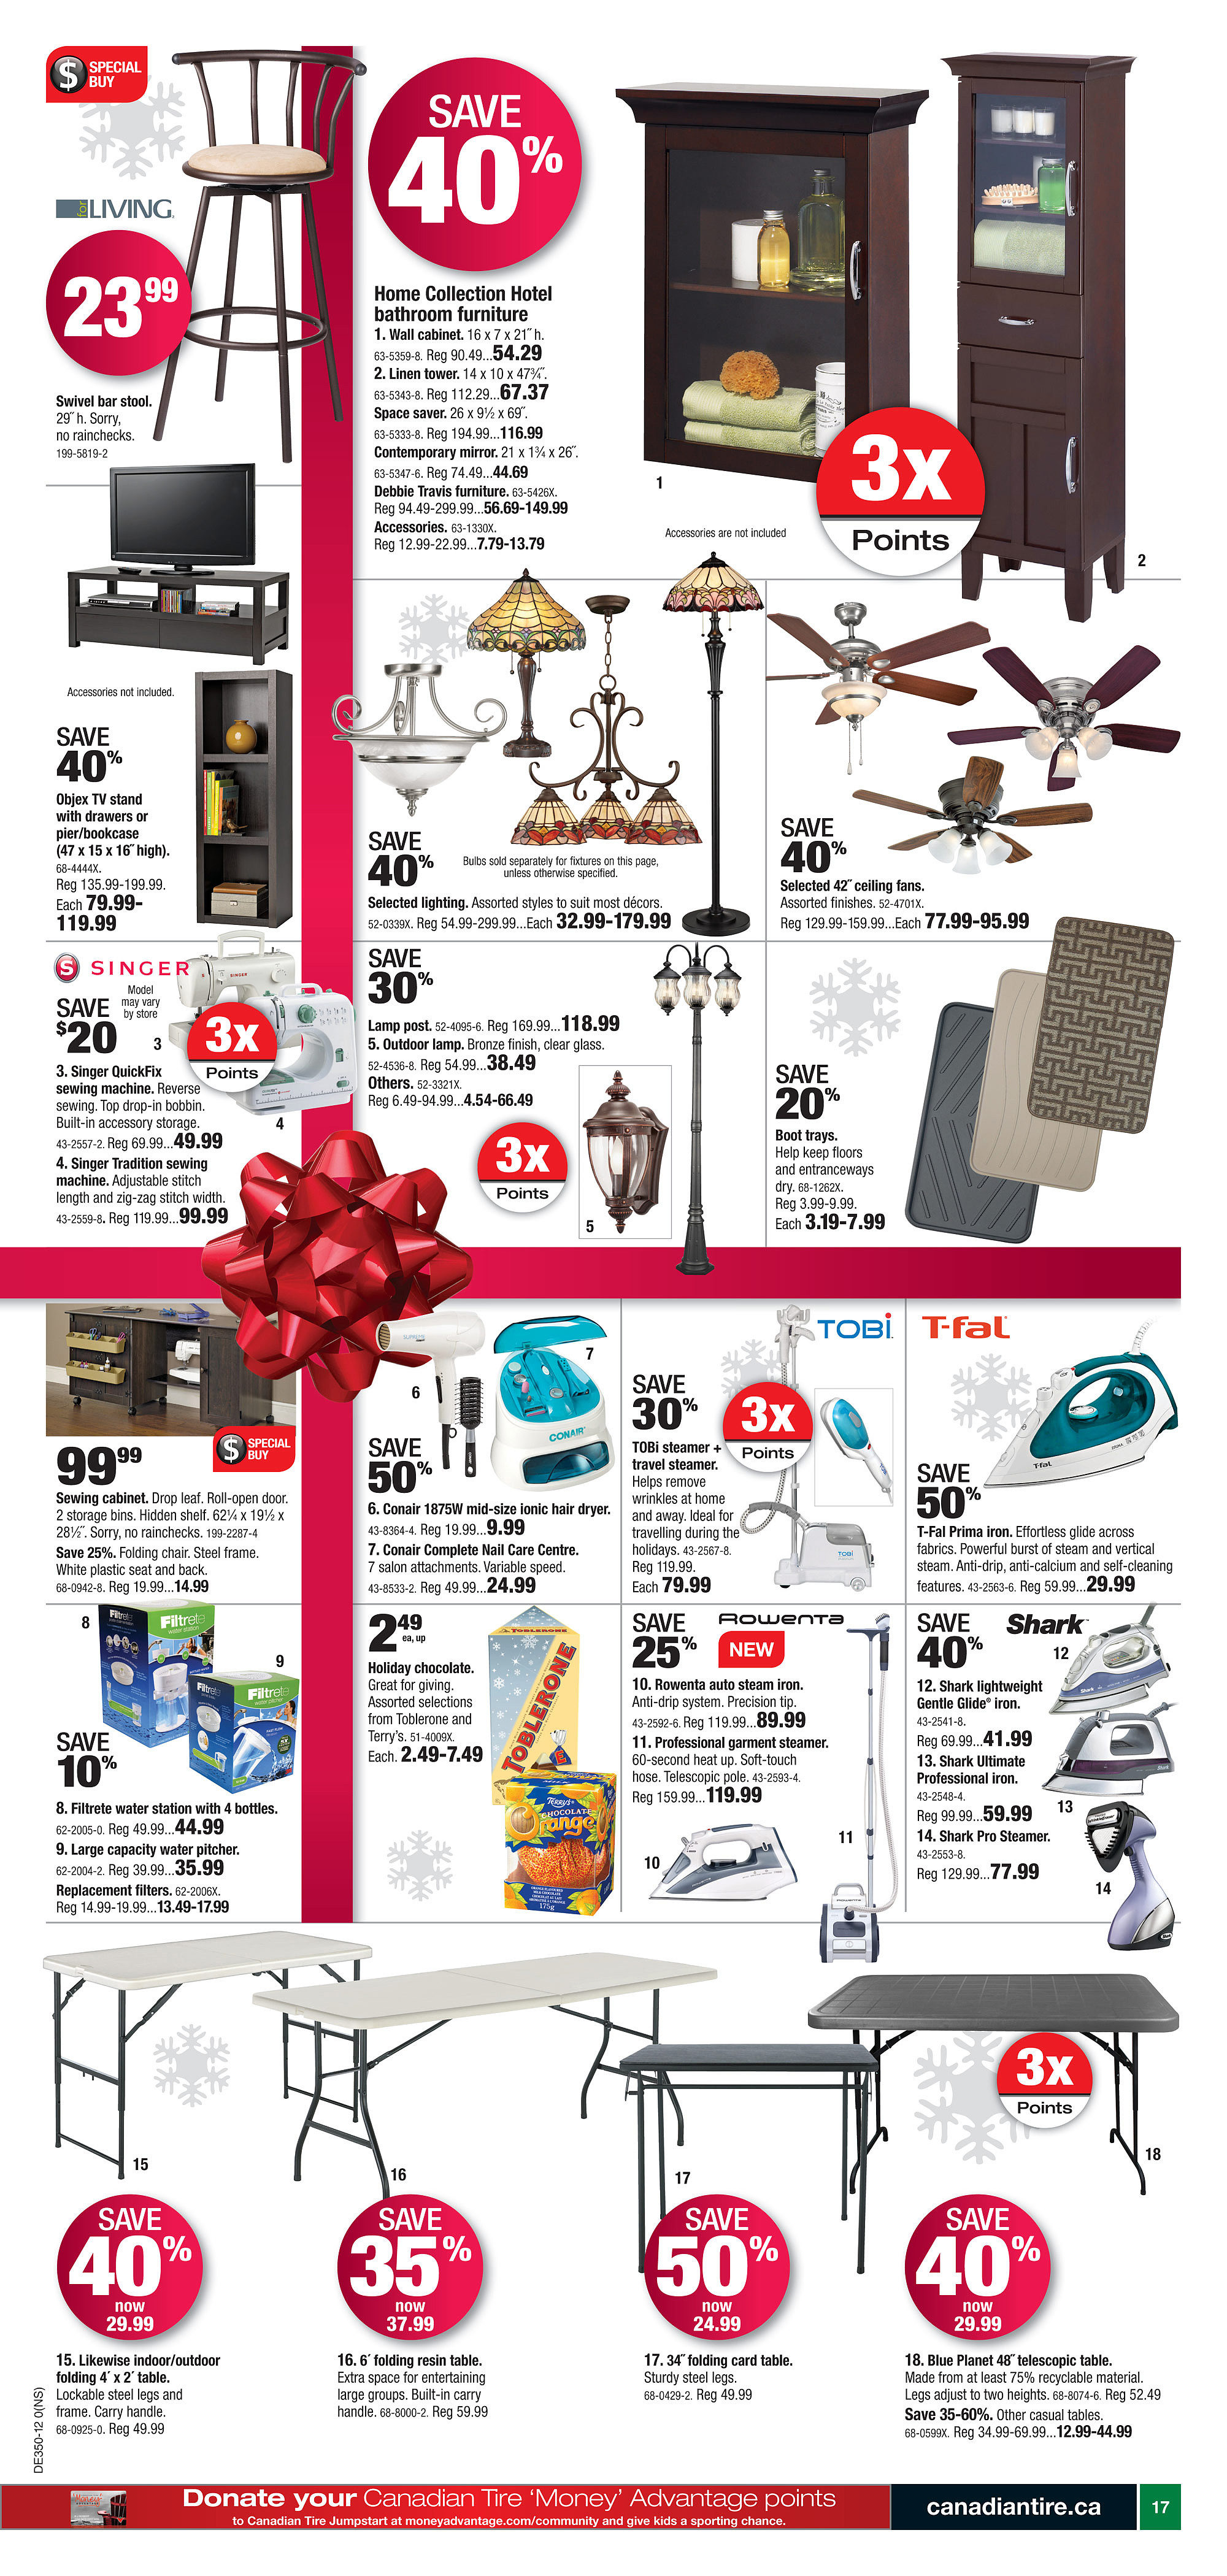 Canadian Tire Weekly Flyer Dec 6 13 Noma Baseboard Heater Wiring